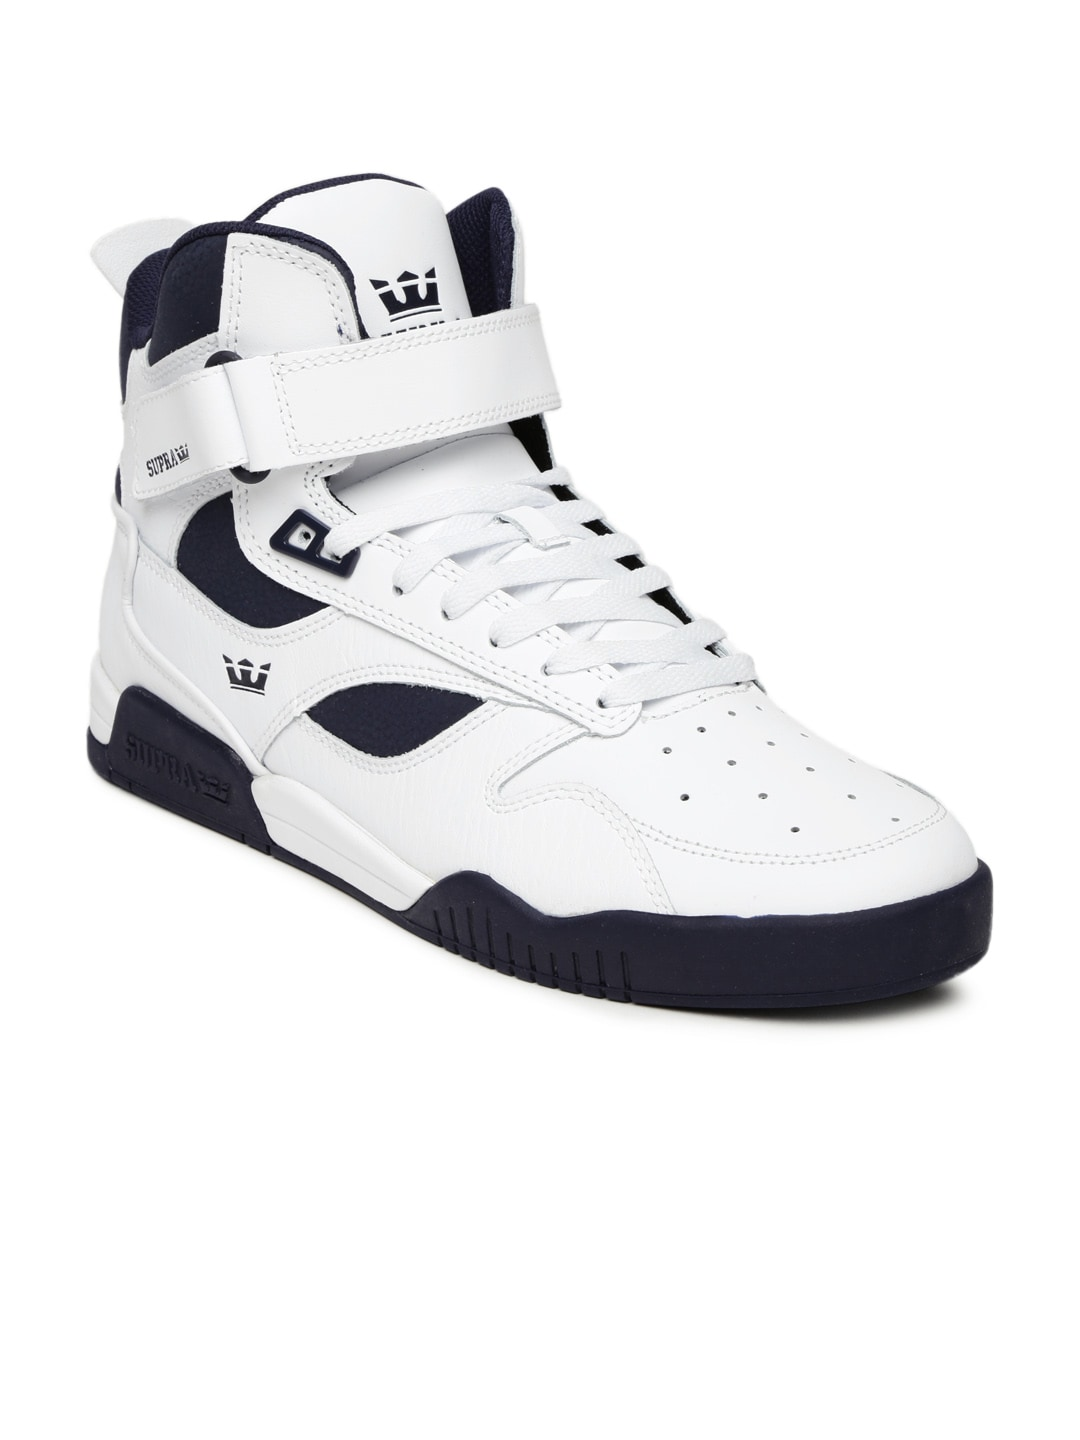 reputable site 8fa61 00097 Supra 08093-143 Men White And Navy Bleeker Leather Sneakers- Price in India